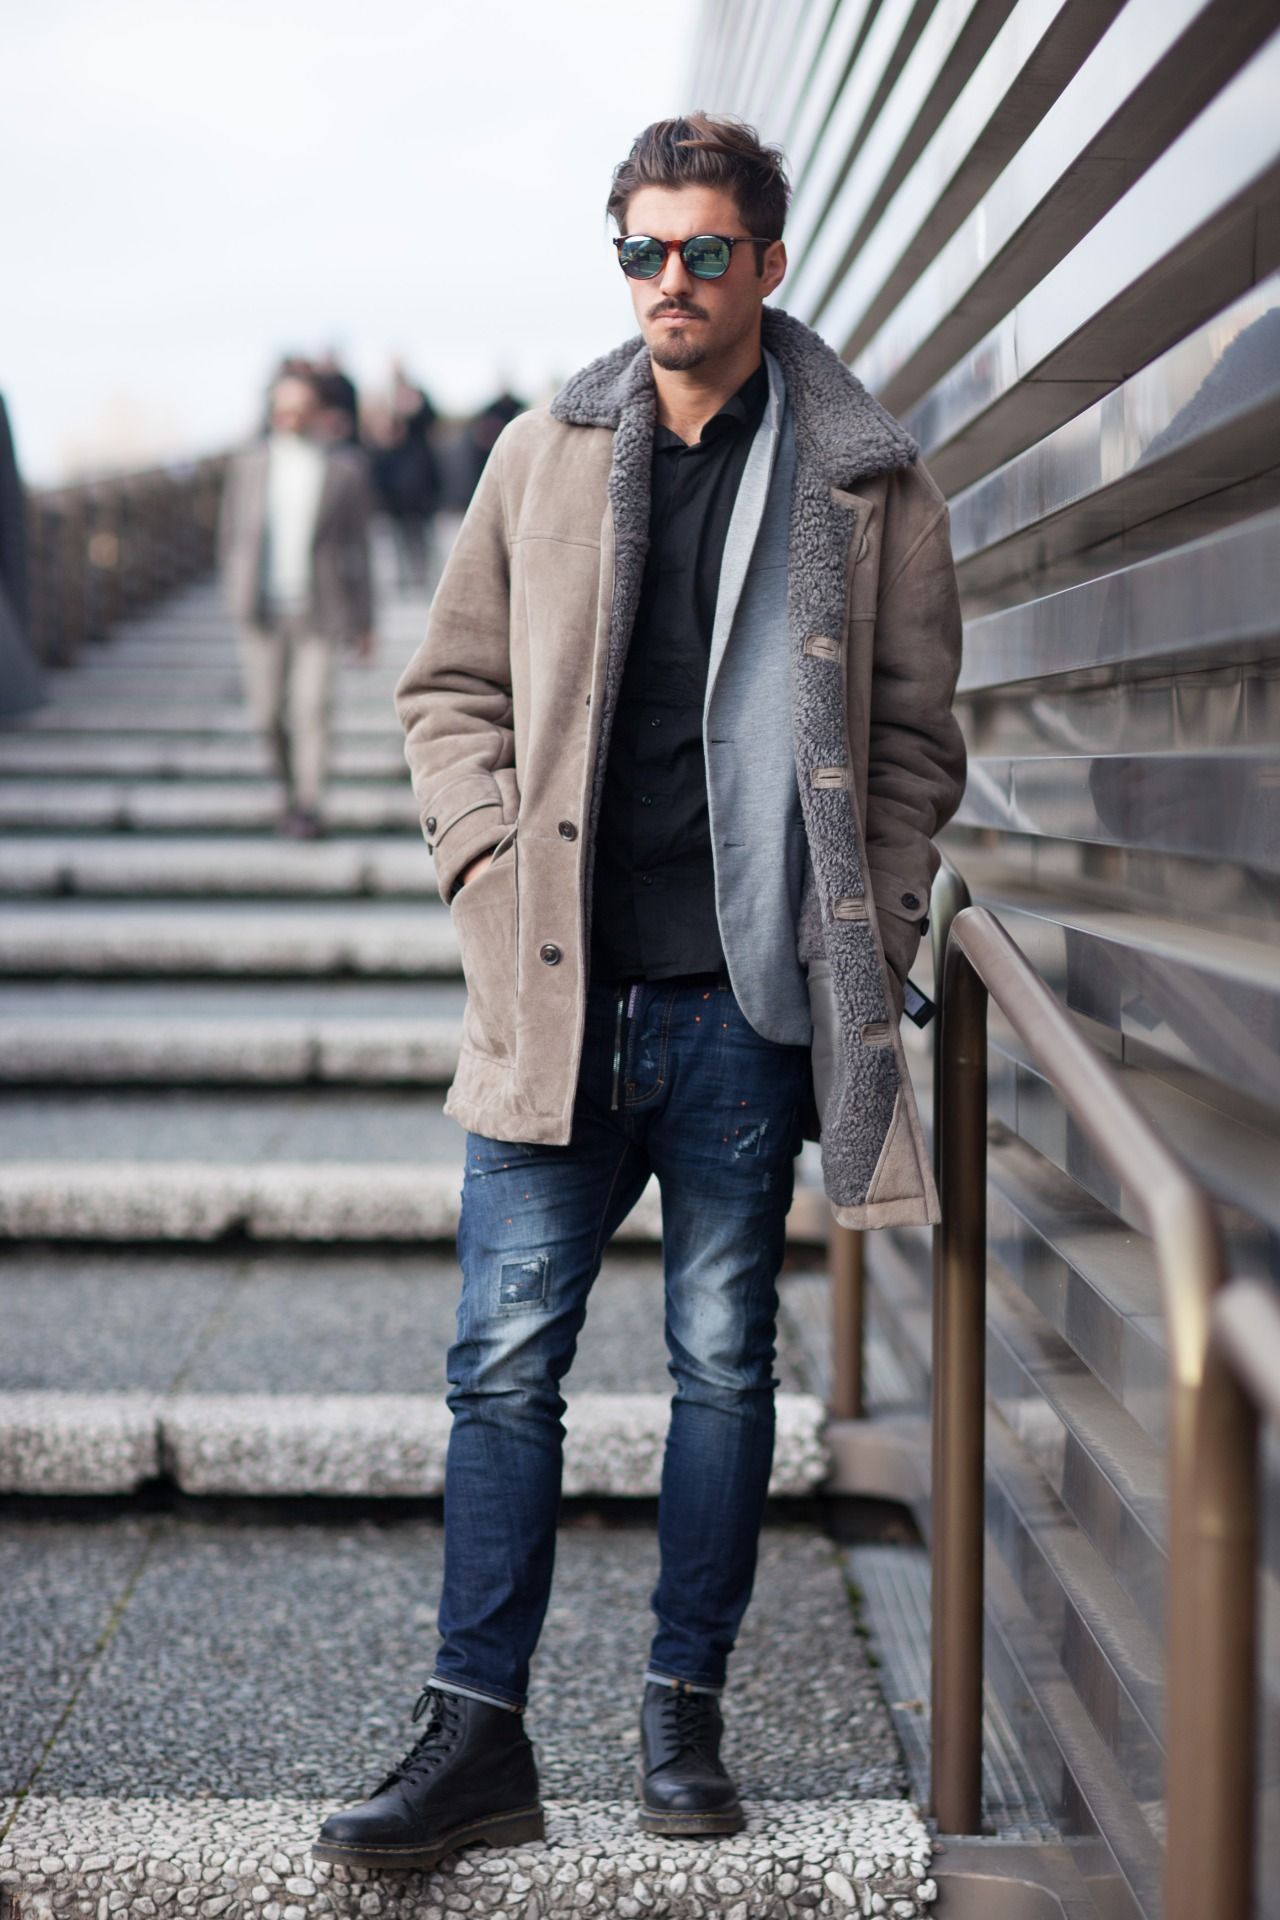 Smart casual outdoor styling with a soft blazer and classic shearling coat. WGSN street style at Pitti Uomo Subscribers click here for trends and full images galleries!